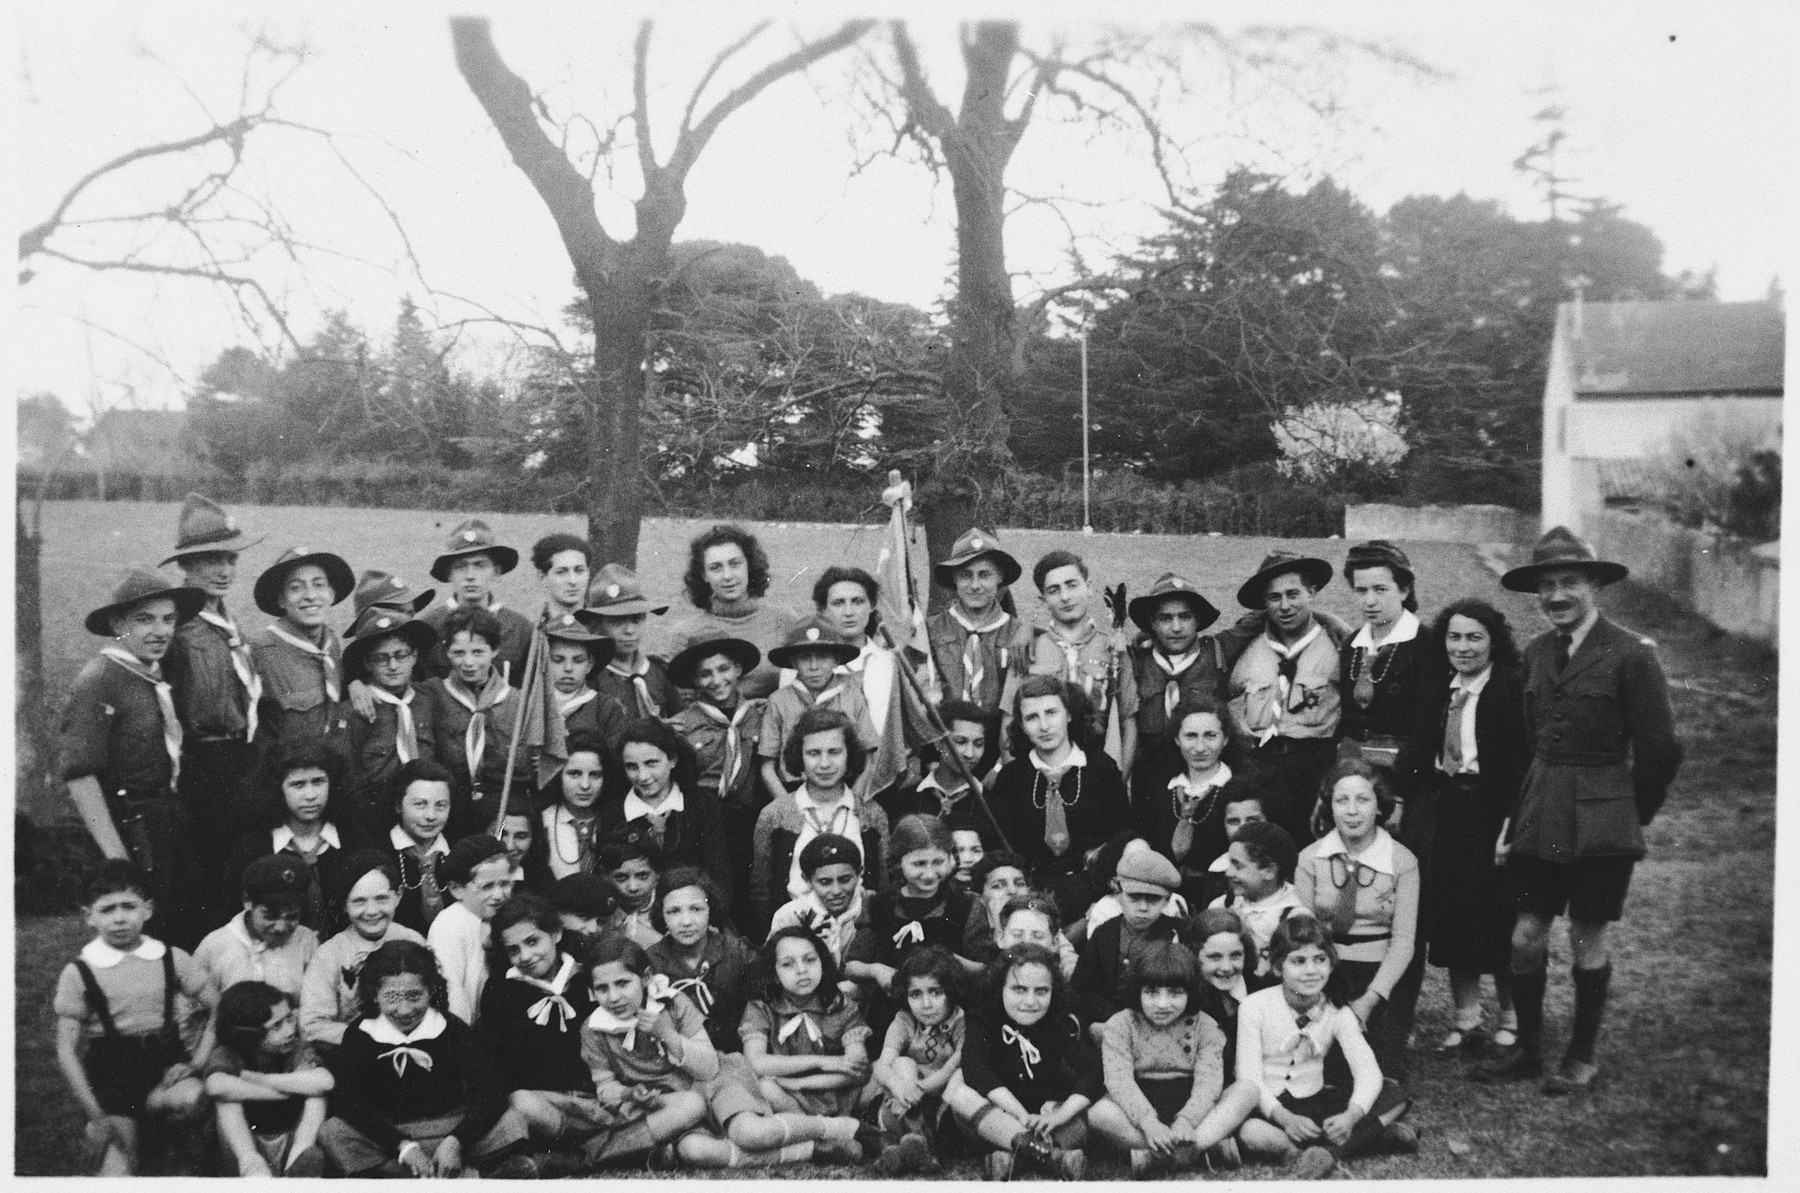 Group portrait of members of the Eclaireurs Israelites de France (French Jewish Scouts).